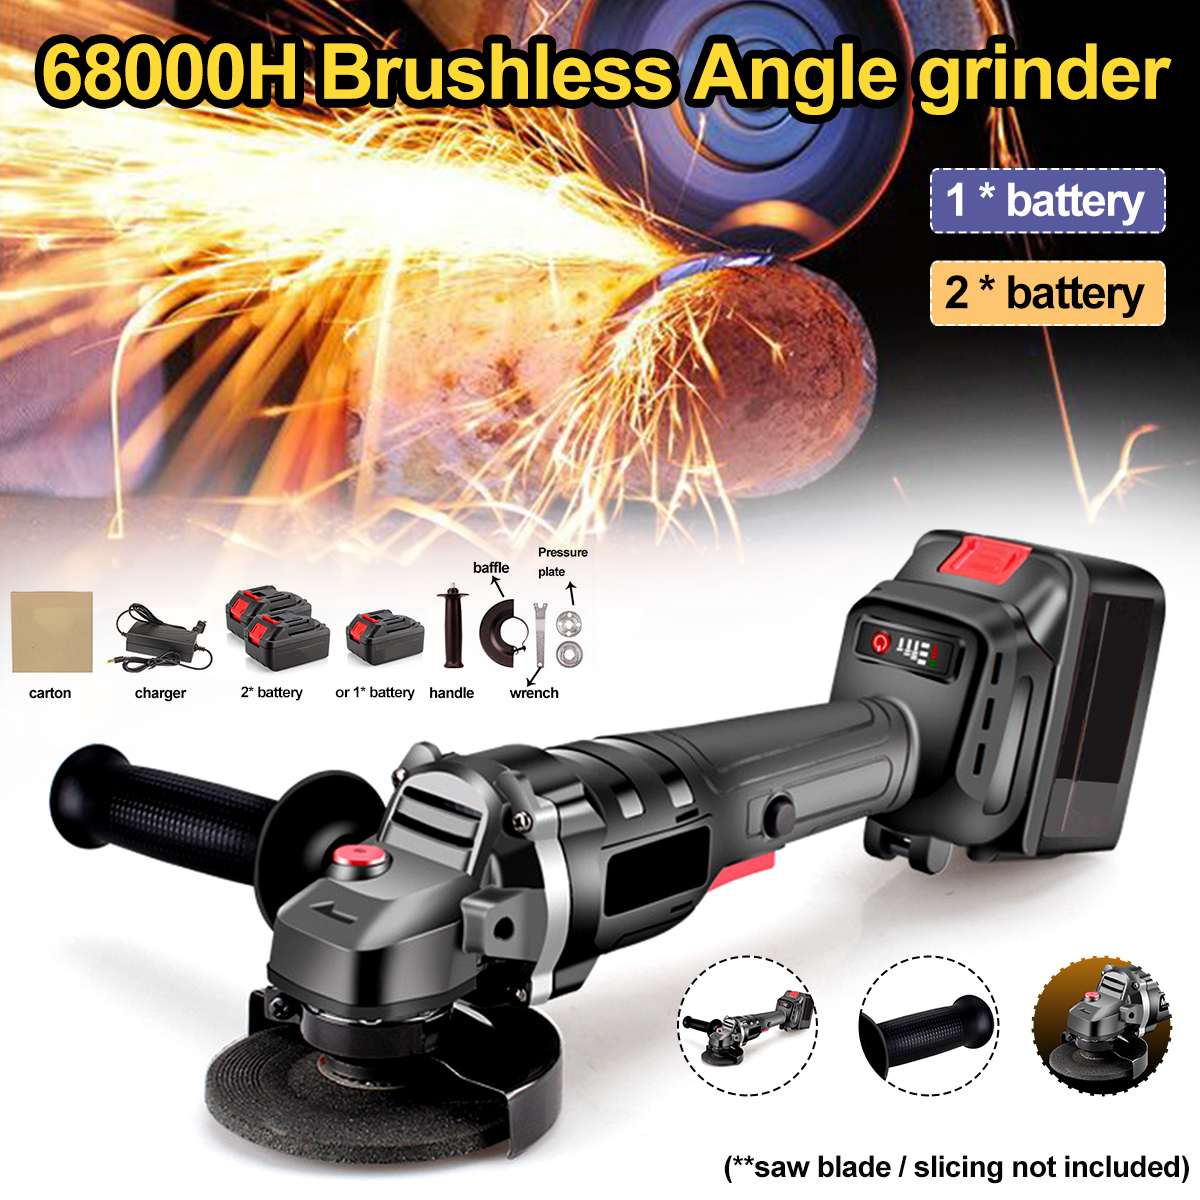 18V Angle Grinder Grinding Machine Electric Grinding Machine Power Tool Grinding Cutting Grinding Metal 68000MAH 2xBattery